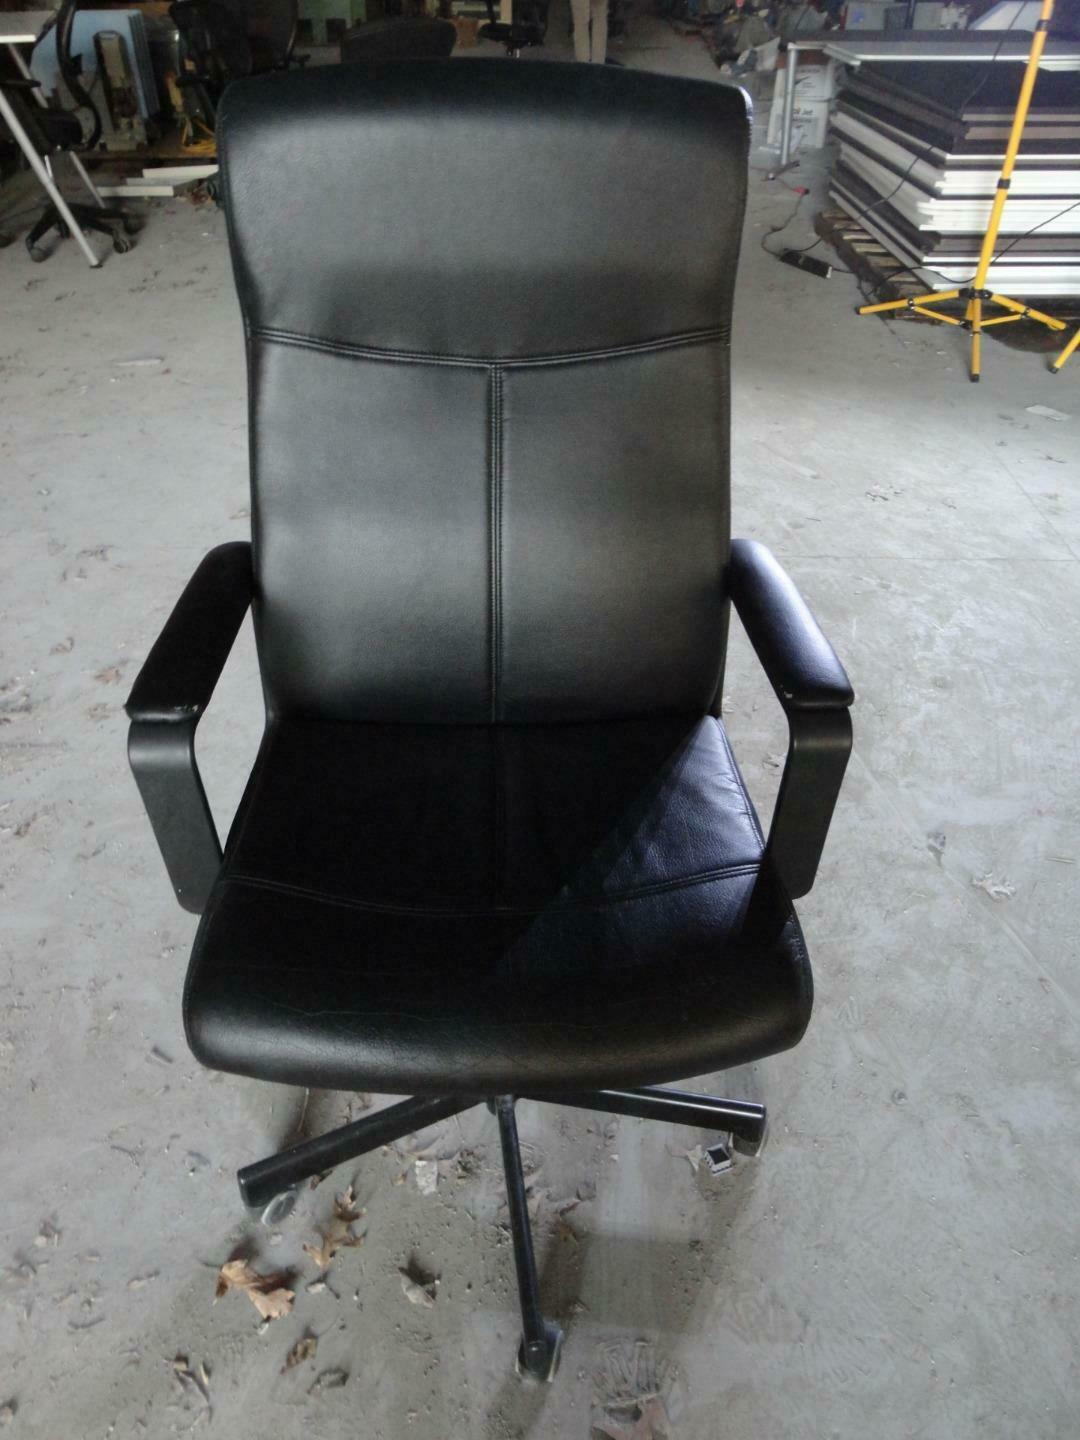 Fingal Swivel Chair Ikea Black Office Swivel High Back Adjustable Arm Desk Task Computer Seat Chair